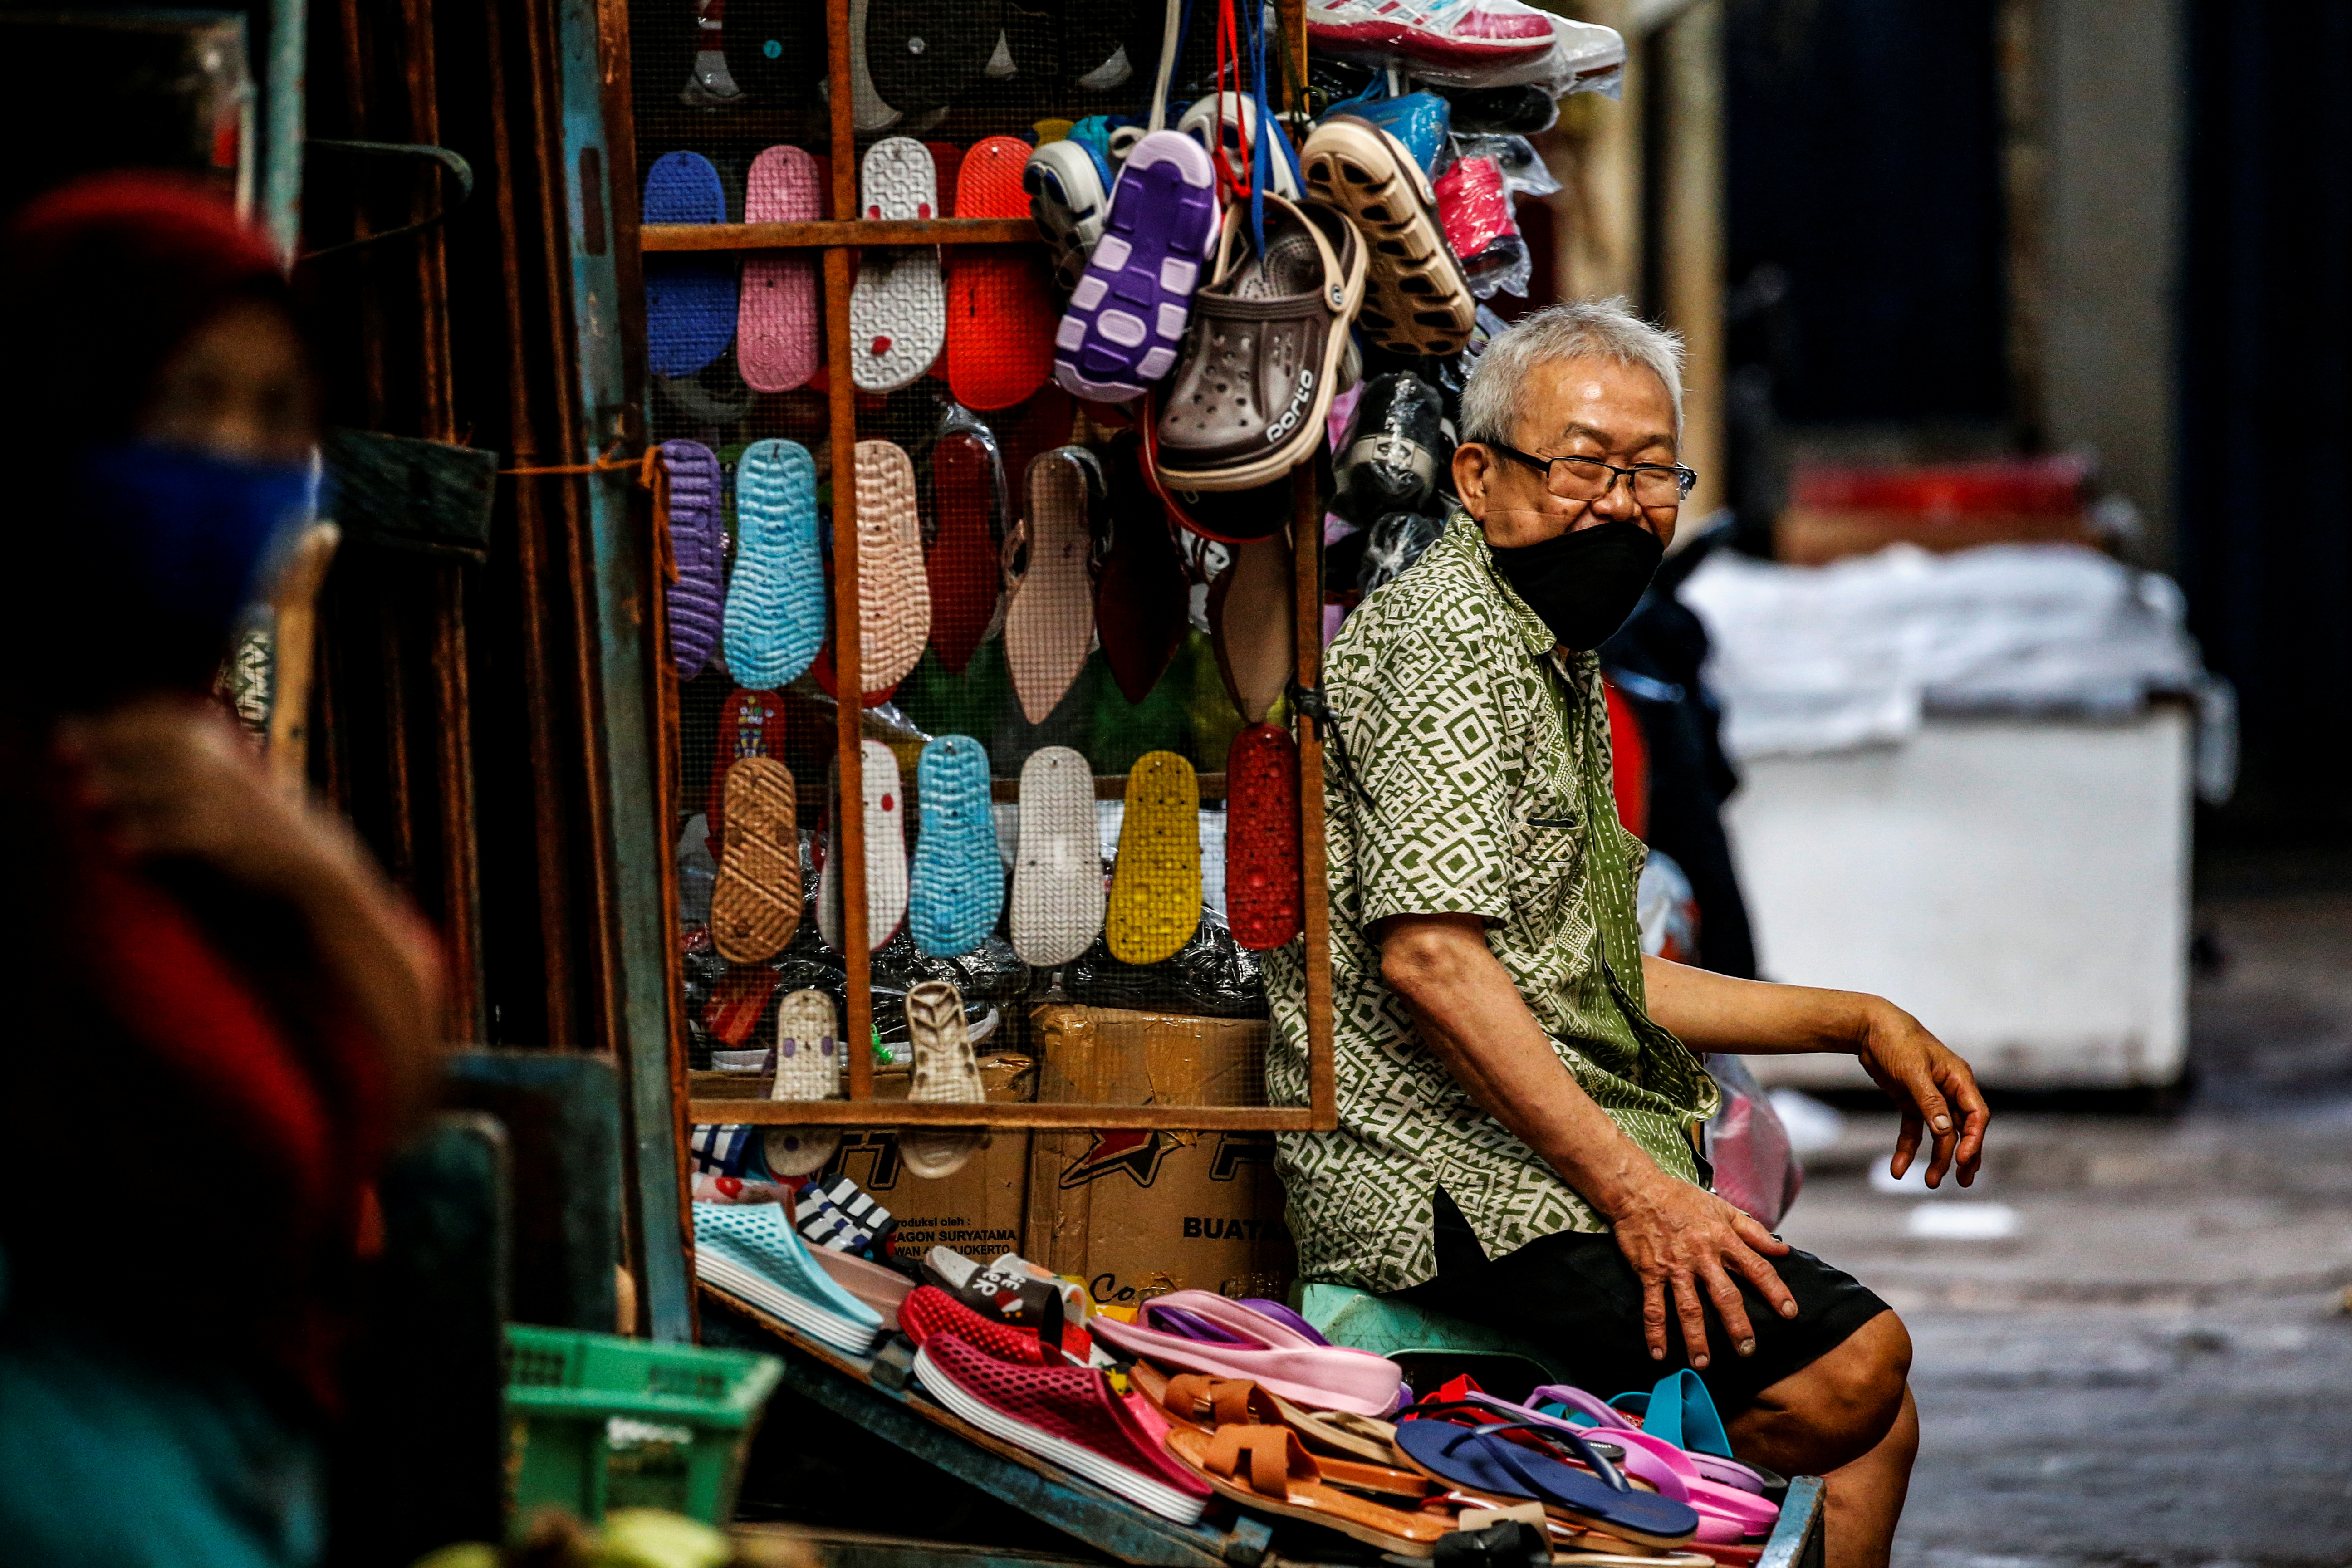 A footwear vendor wears a face mask as a preventive measure against the coronavirus disease (COVID-19) at a traditional market in Jakarta, Indonesia, June 25, 2020.